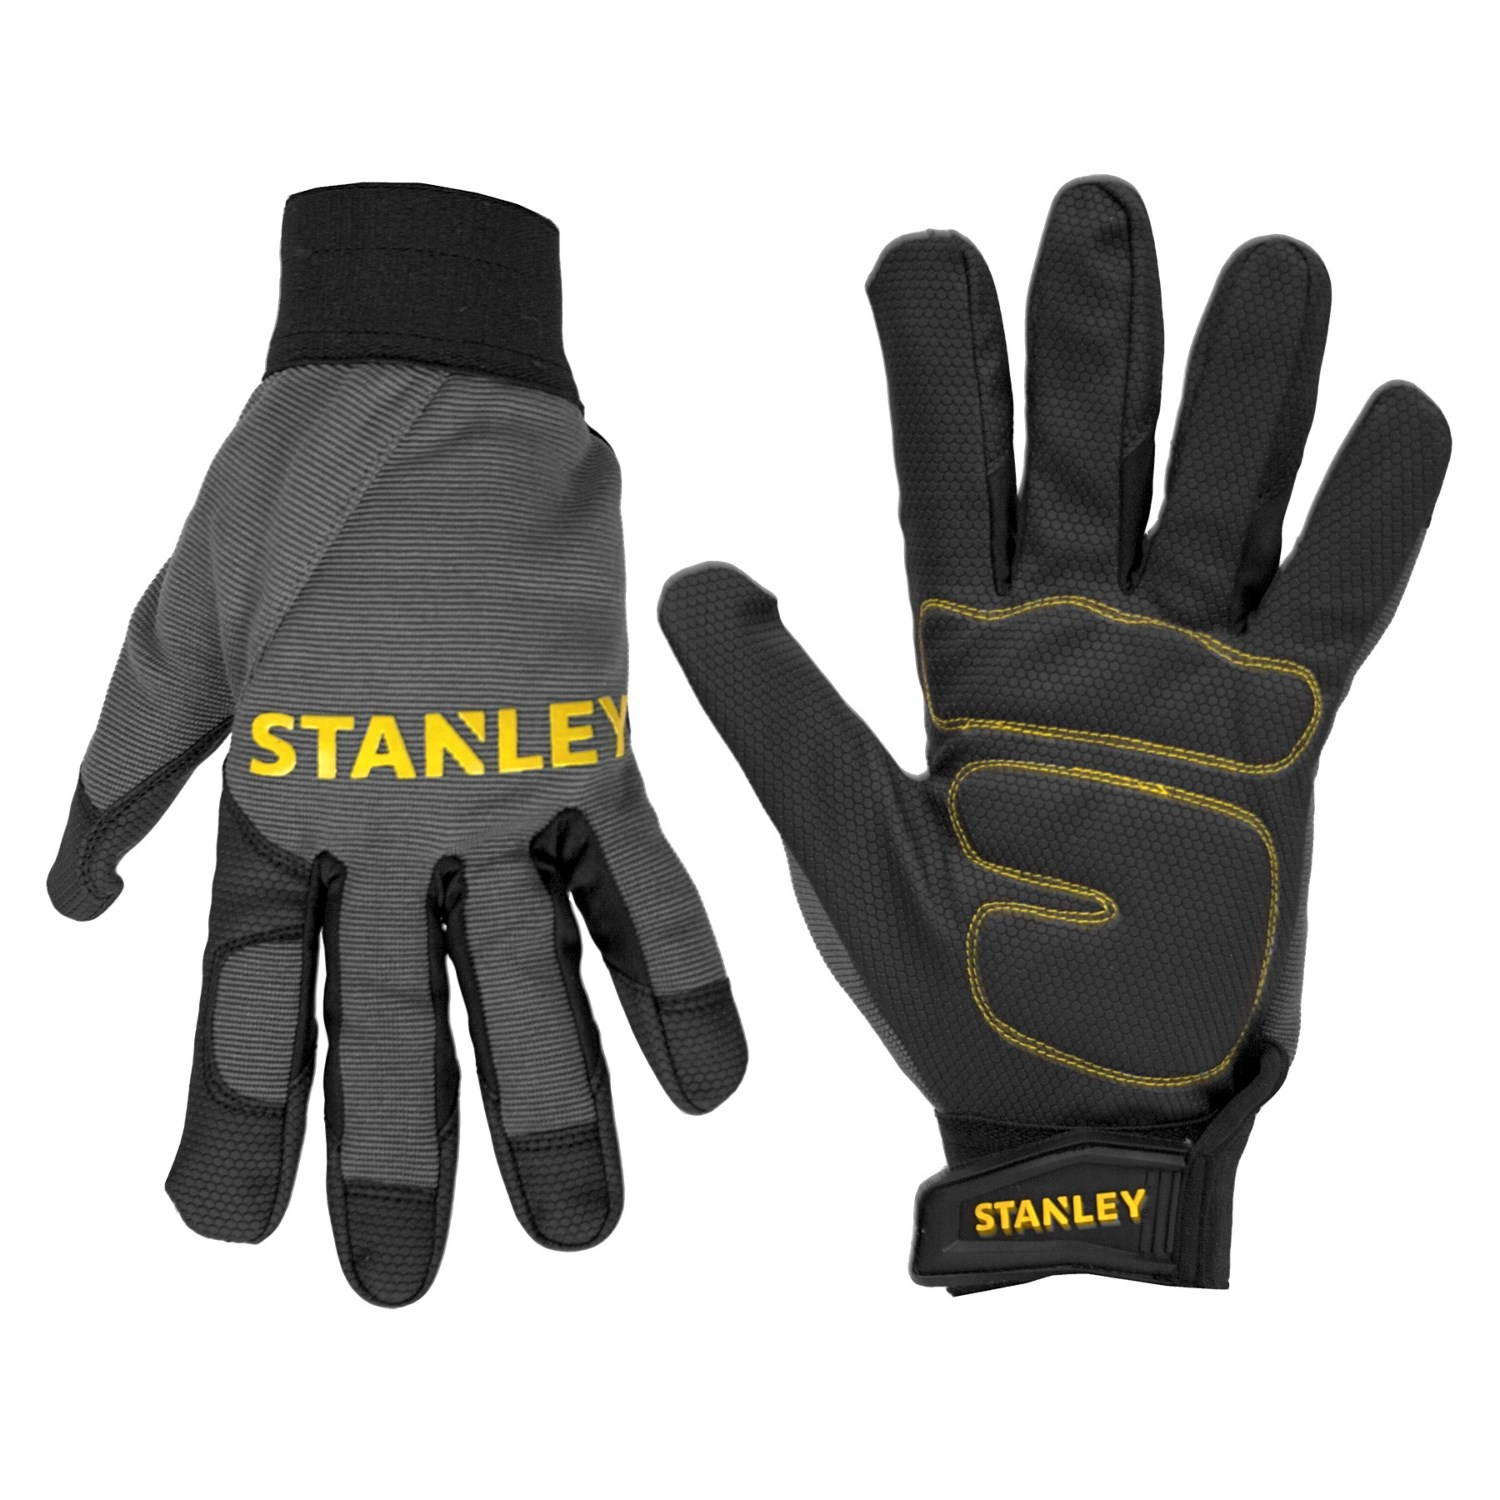 Stanley Padded Comfort Grip Work Gloves (For Men and Women